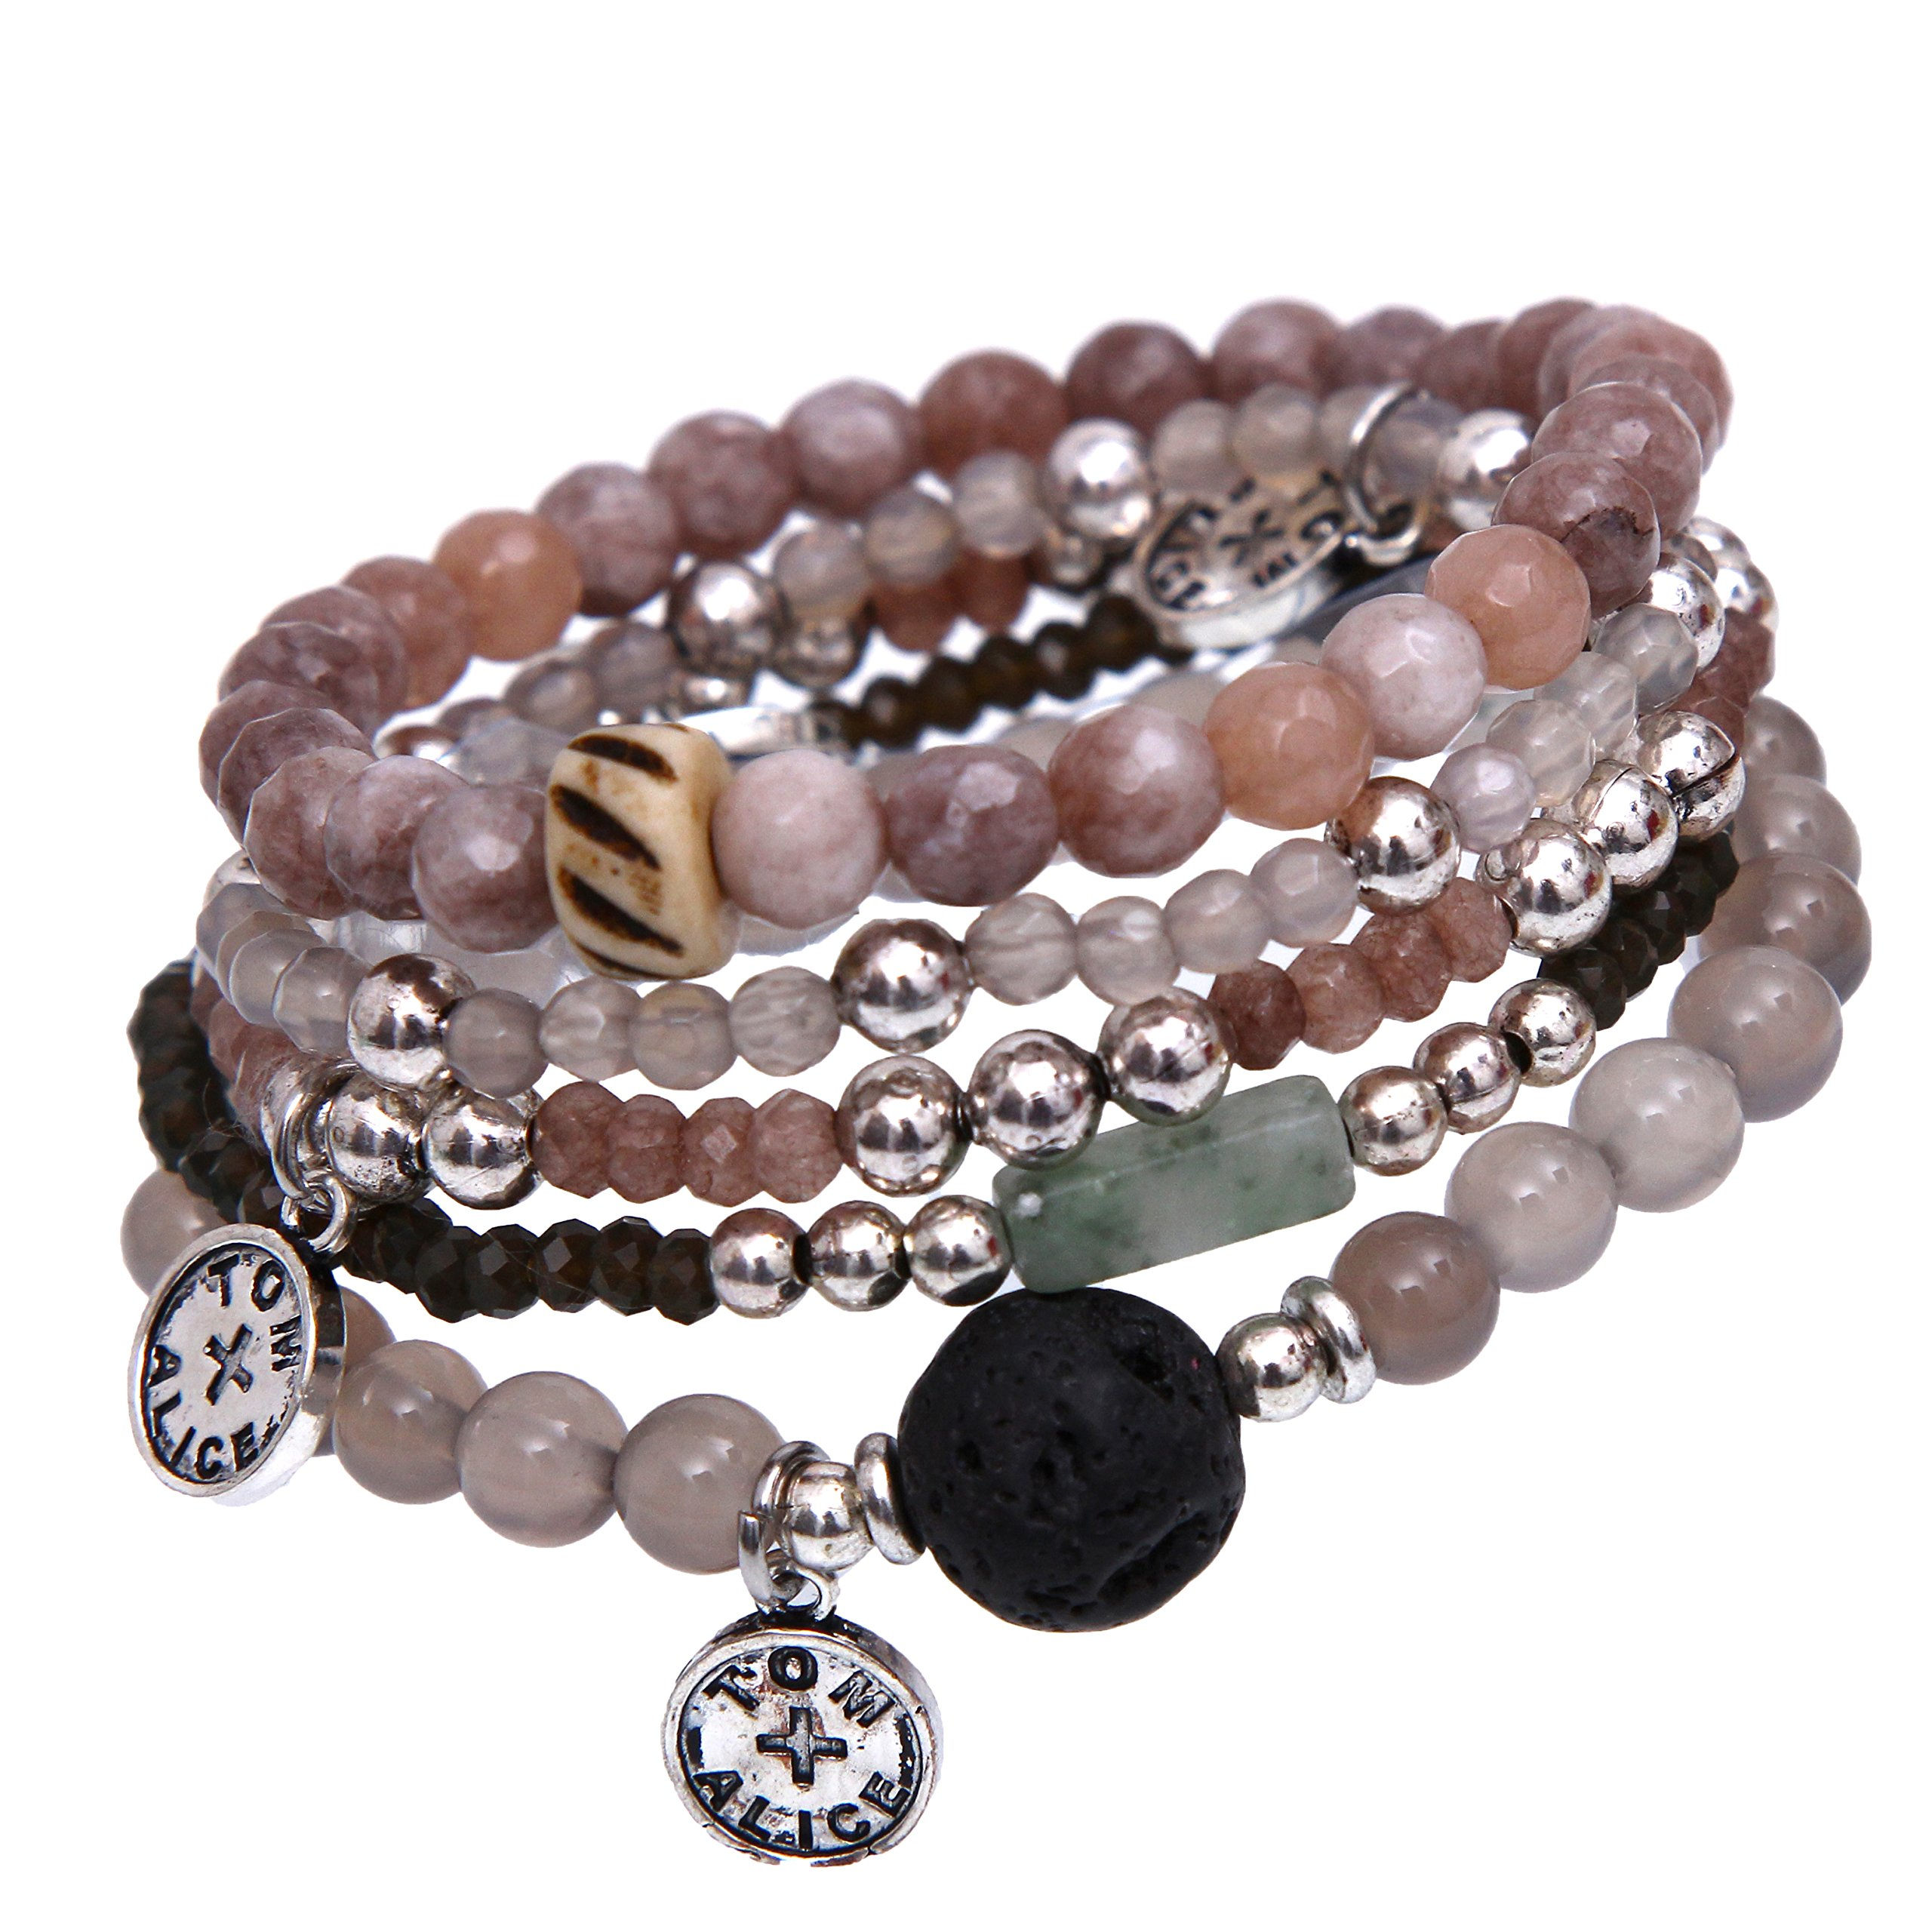 tom+alice Natural Stone Beads Stretch Bracelets for Women with Lava Stone Multilayer Bohemian Set Beaded Bangle Bracelets Grey Agate Silver